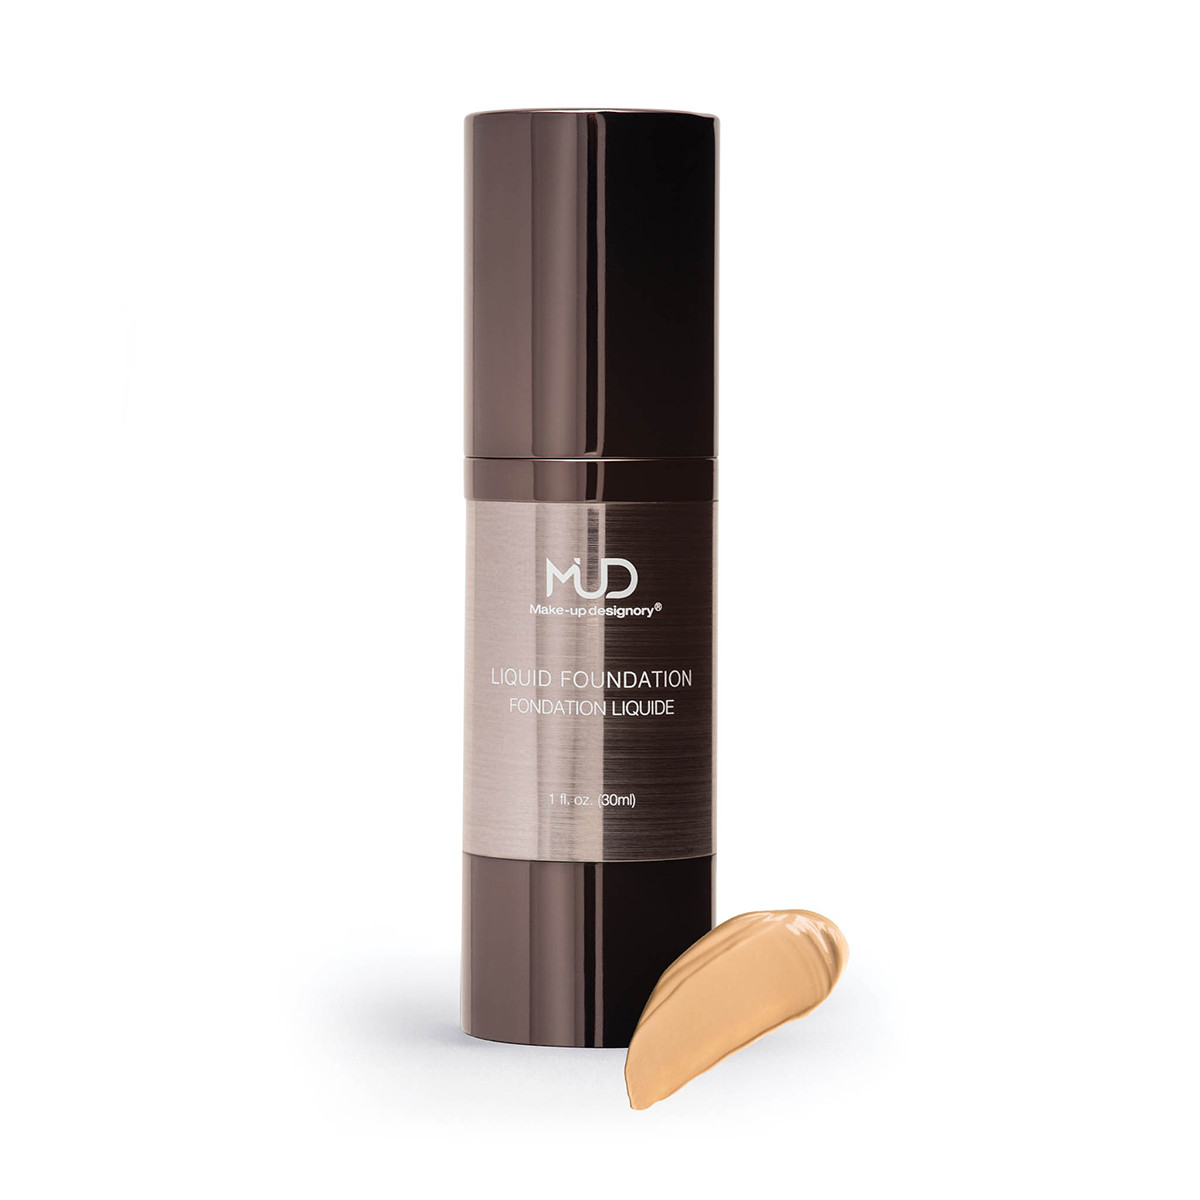 MUD Liquid Foundation L1 is an extra-light golden olive tone. Suitable for very fair olive skin tones.